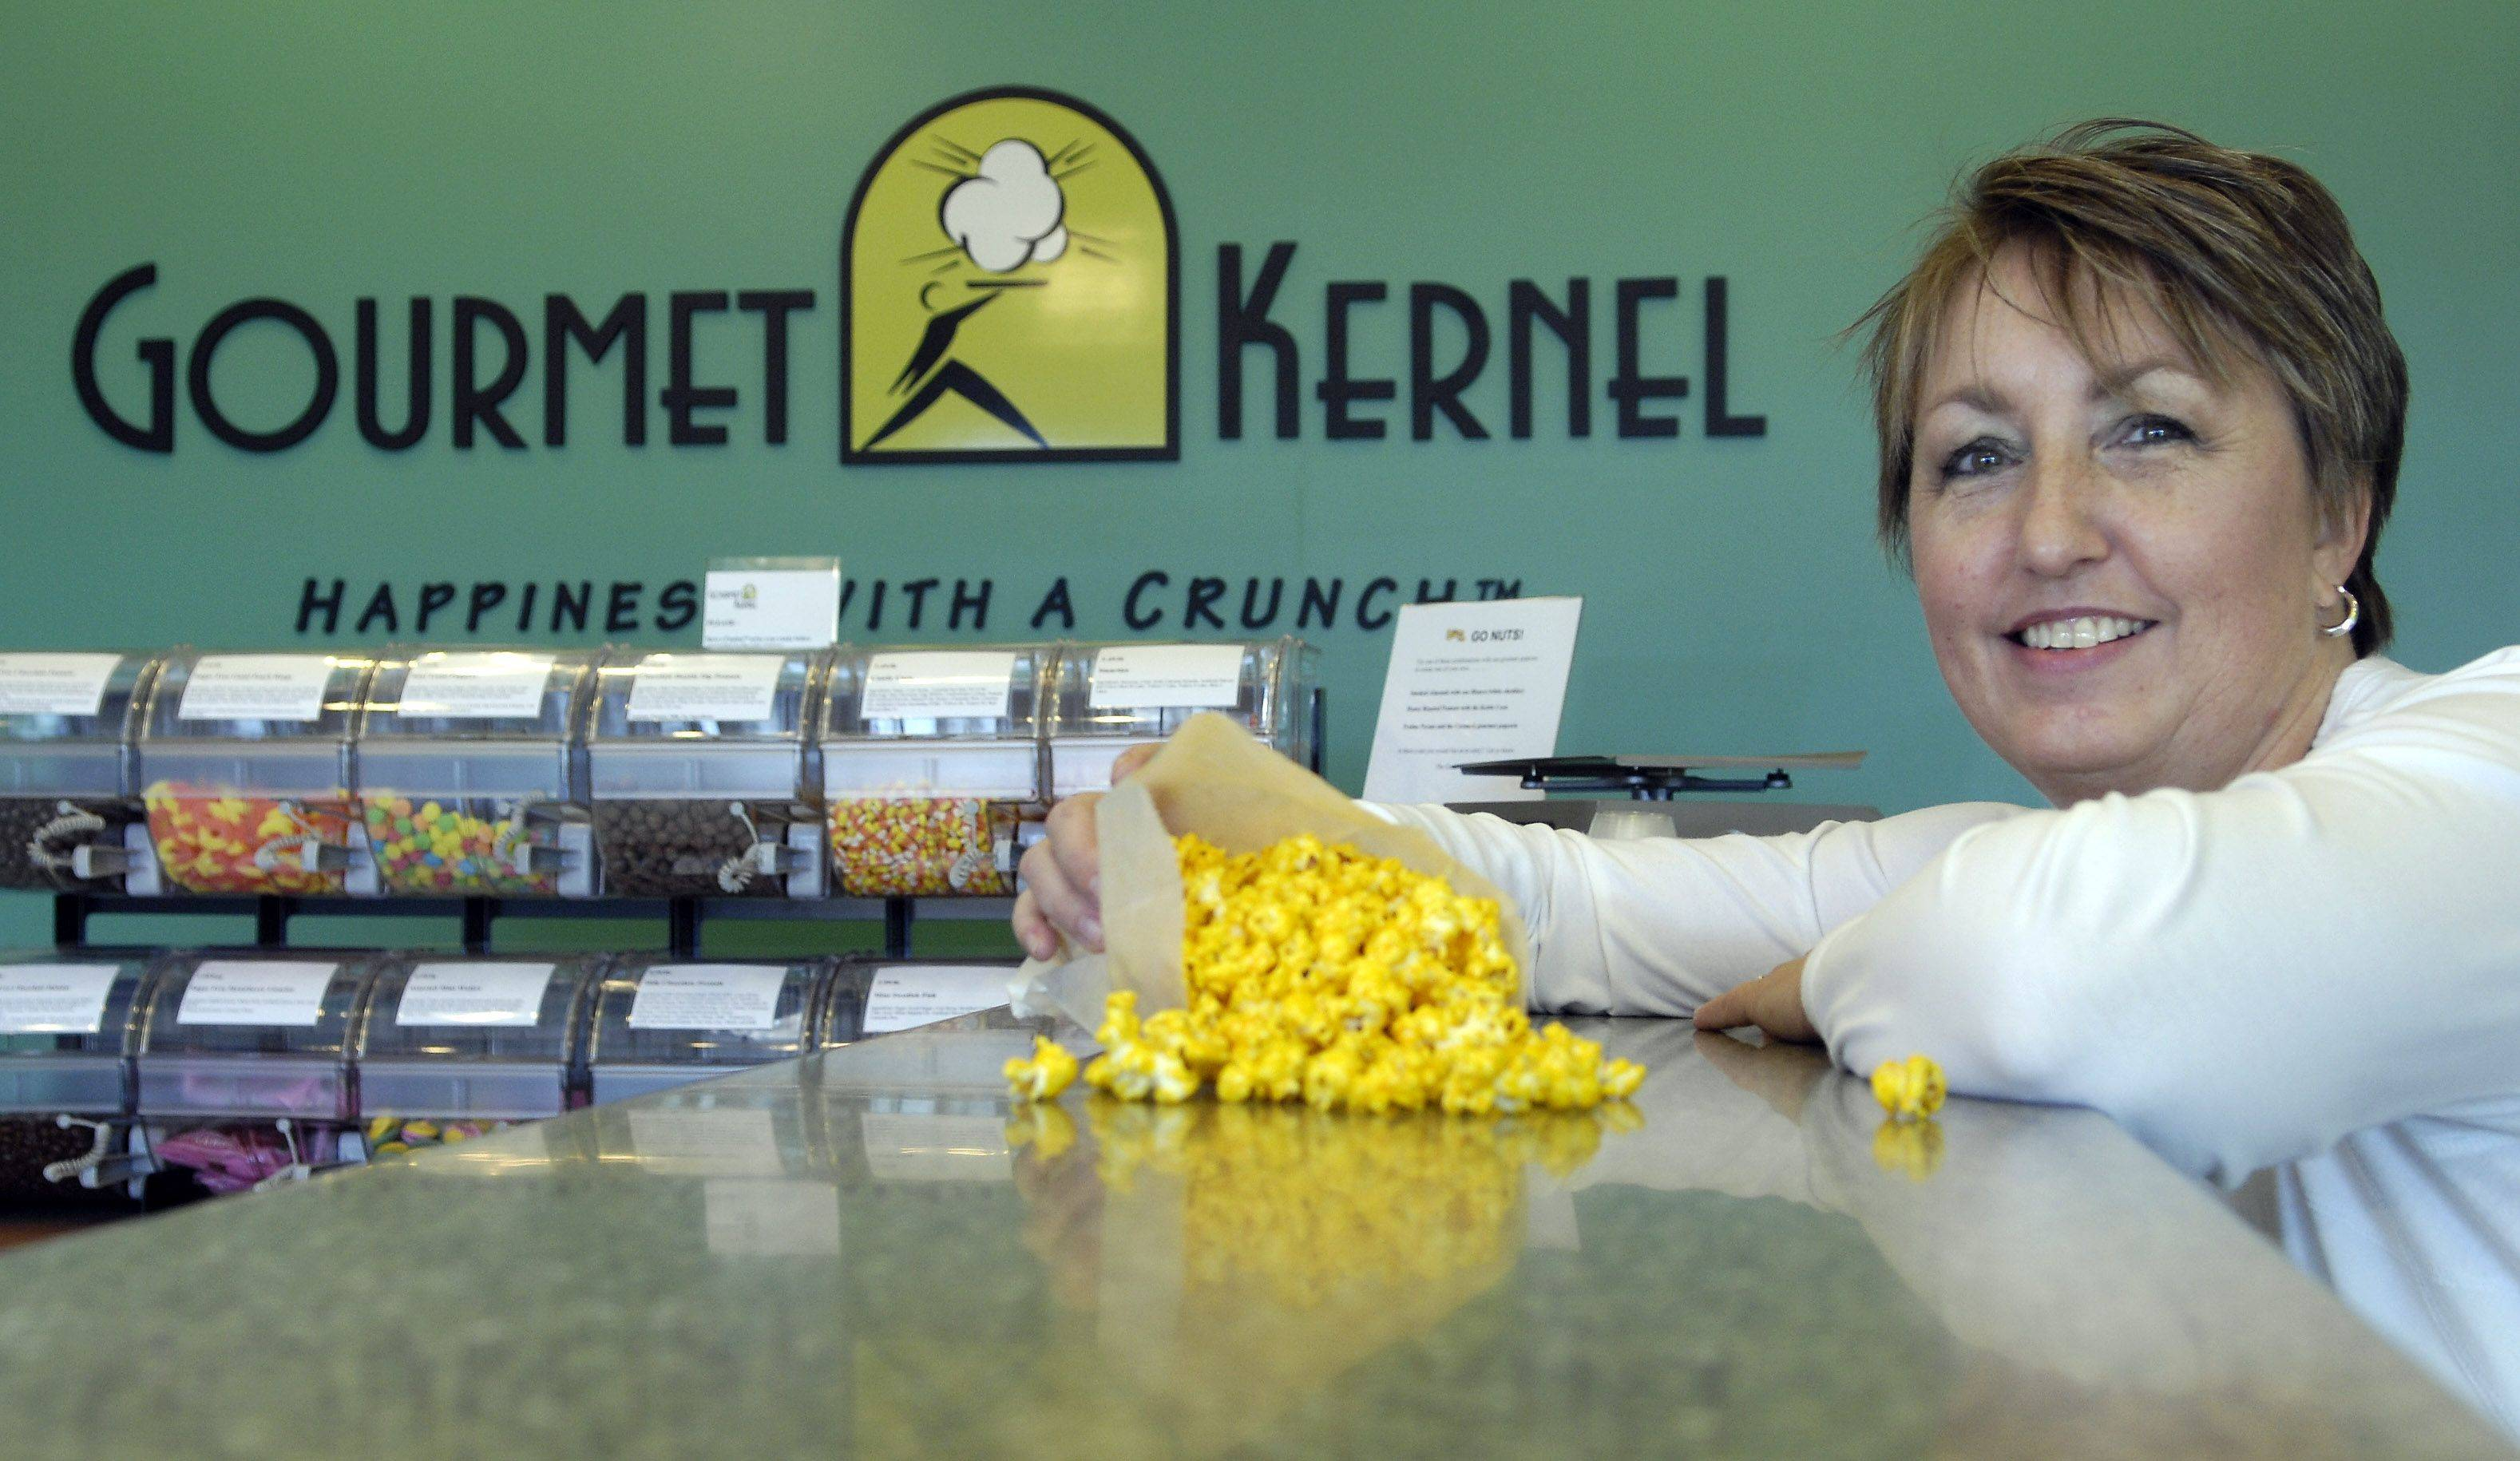 Judy Reyes recently opened Gourmet Kernel, a popcorn shop selling a variety of flavors, in Algonquin Commons.